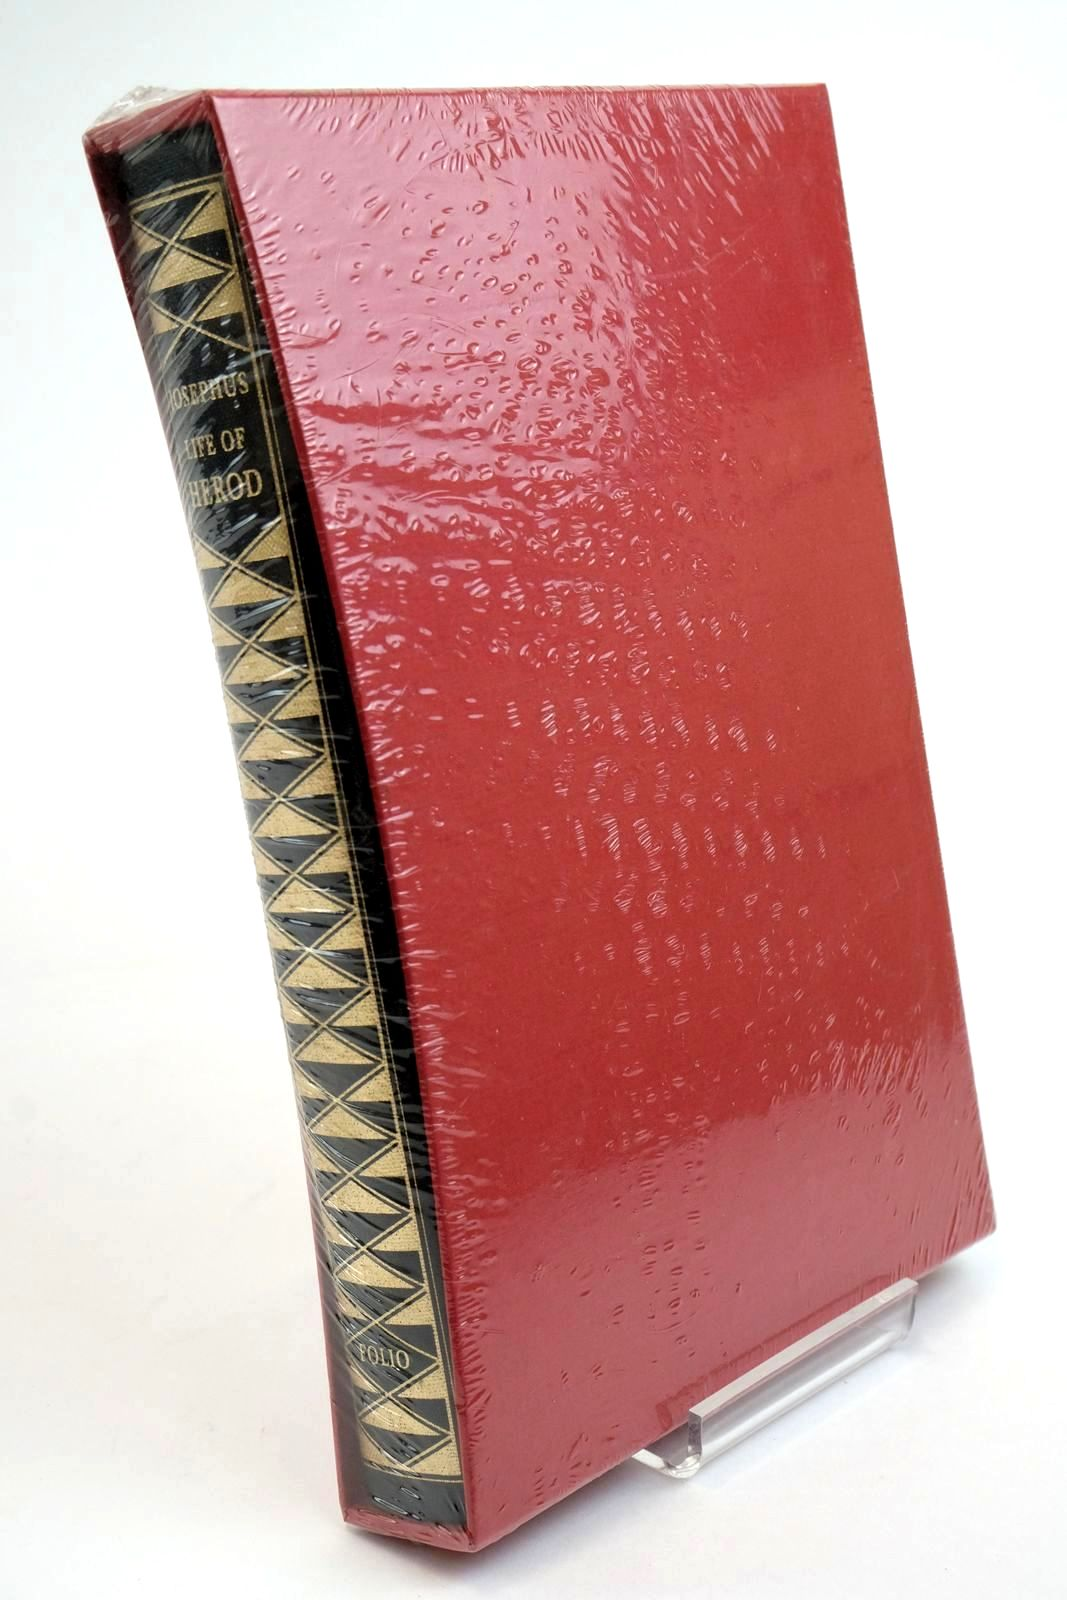 Photo of LIFE OF HEROD written by Josephus,  Gregory, John published by Folio Society (STOCK CODE: 1321718)  for sale by Stella & Rose's Books